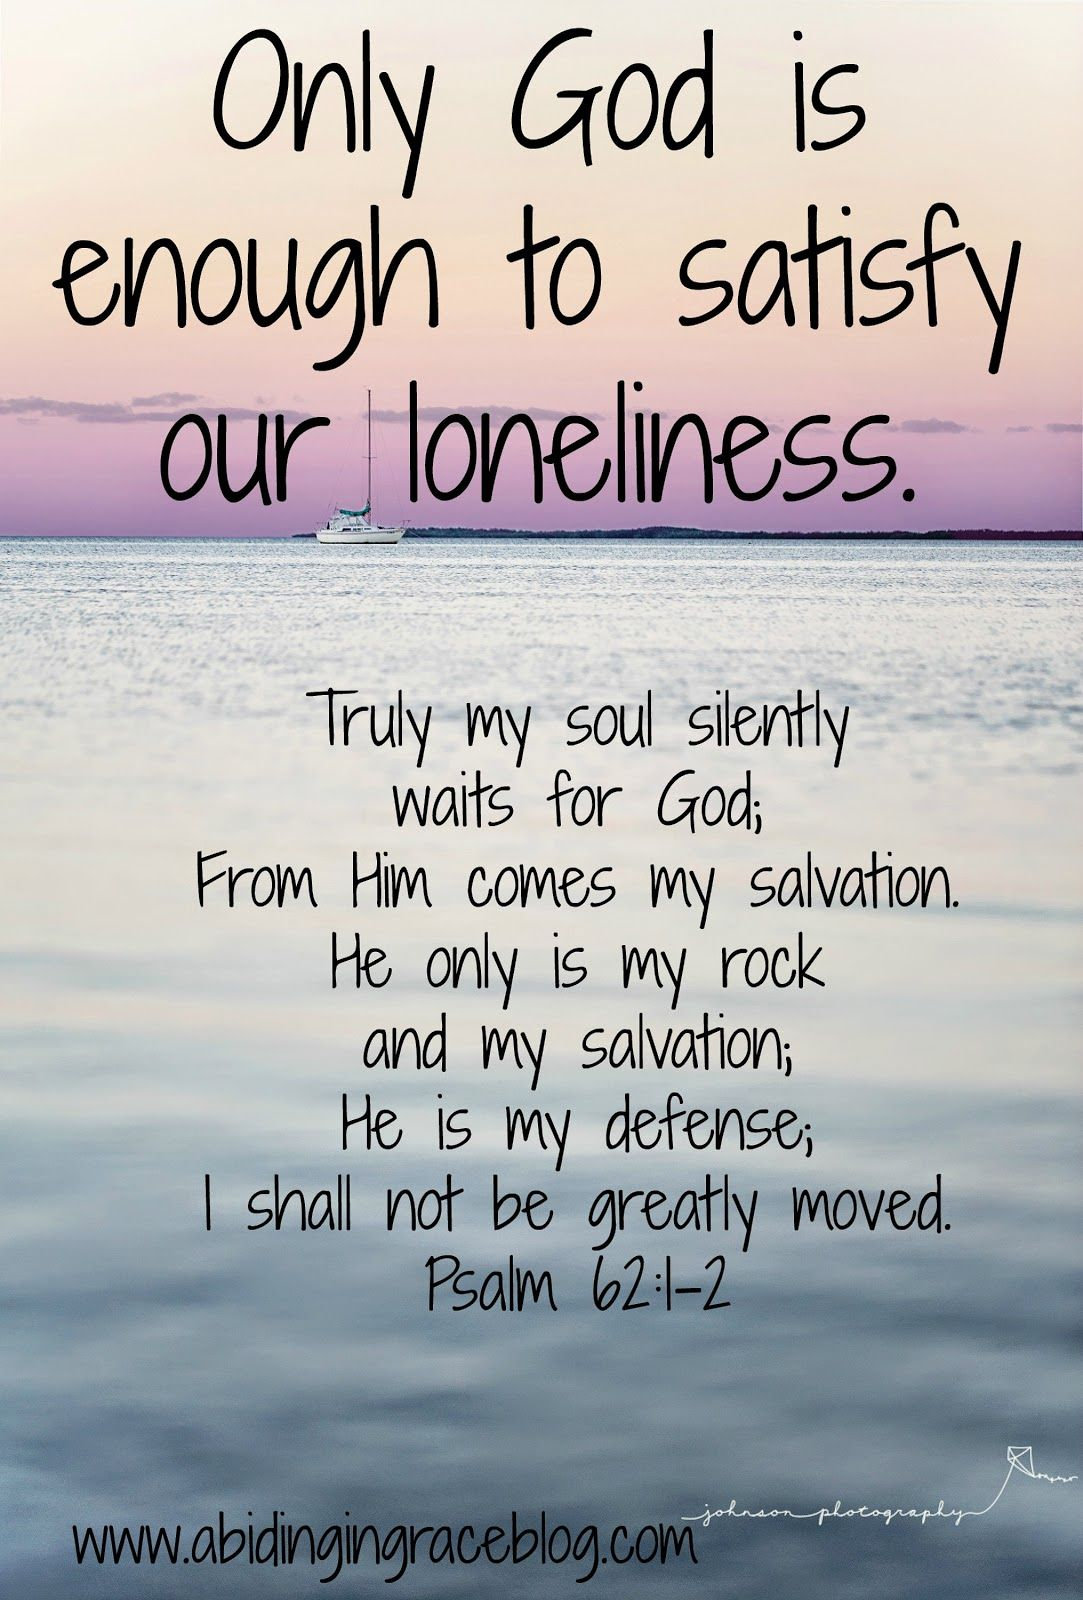 What Does the Bible Say About Loneliness?